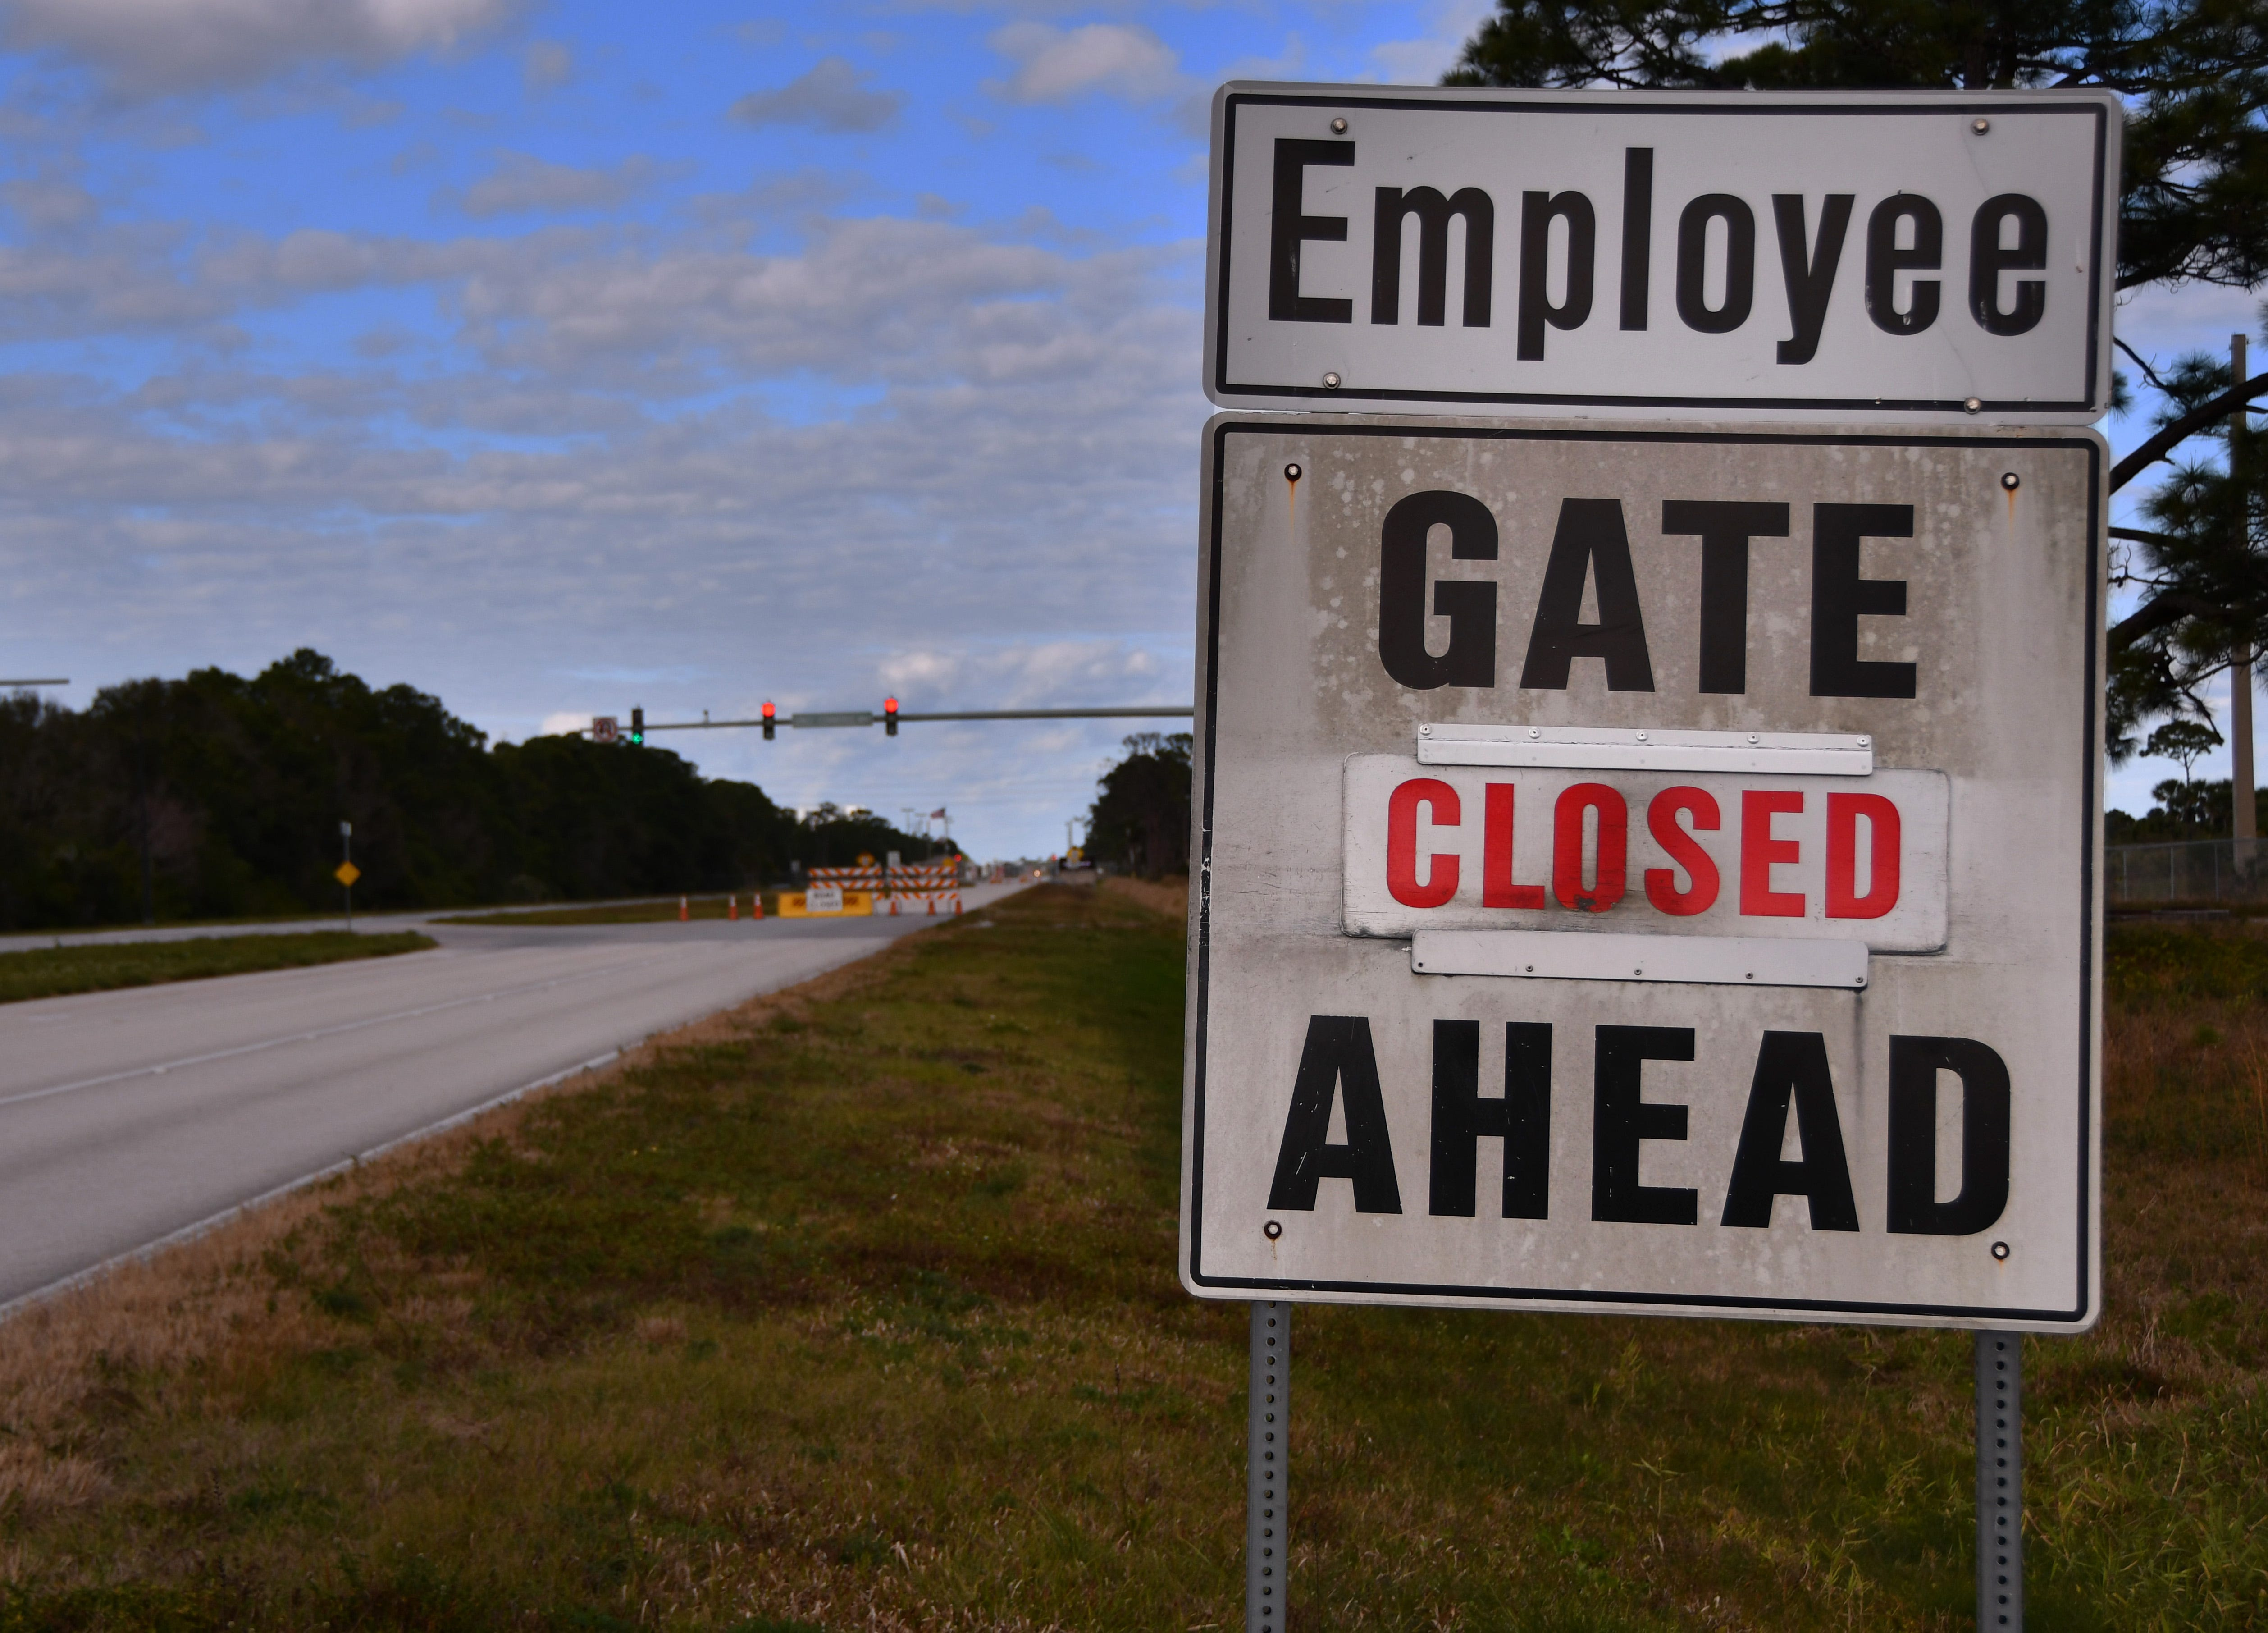 a34cb28e-5d7d-44ce-859b-cad130a81814-uscp-73lh7e98fe95asl5lci_original The government shutdown is hitting Brevard where it hurts: The space industry